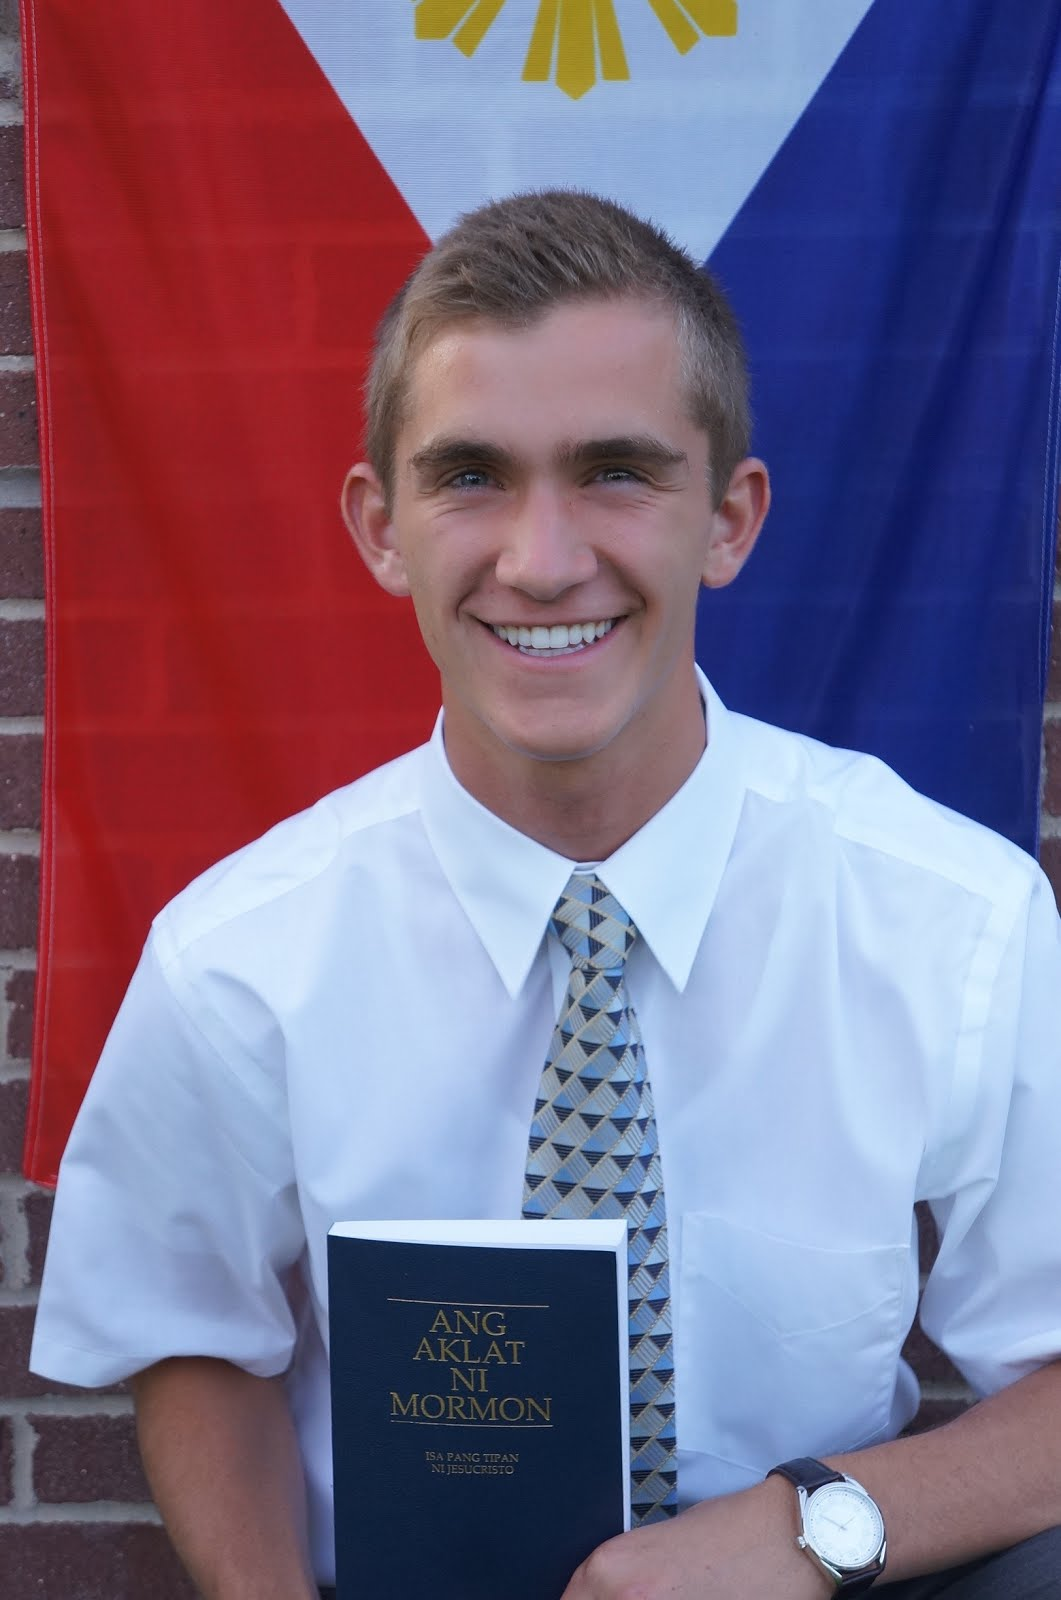 Elder Alldredge